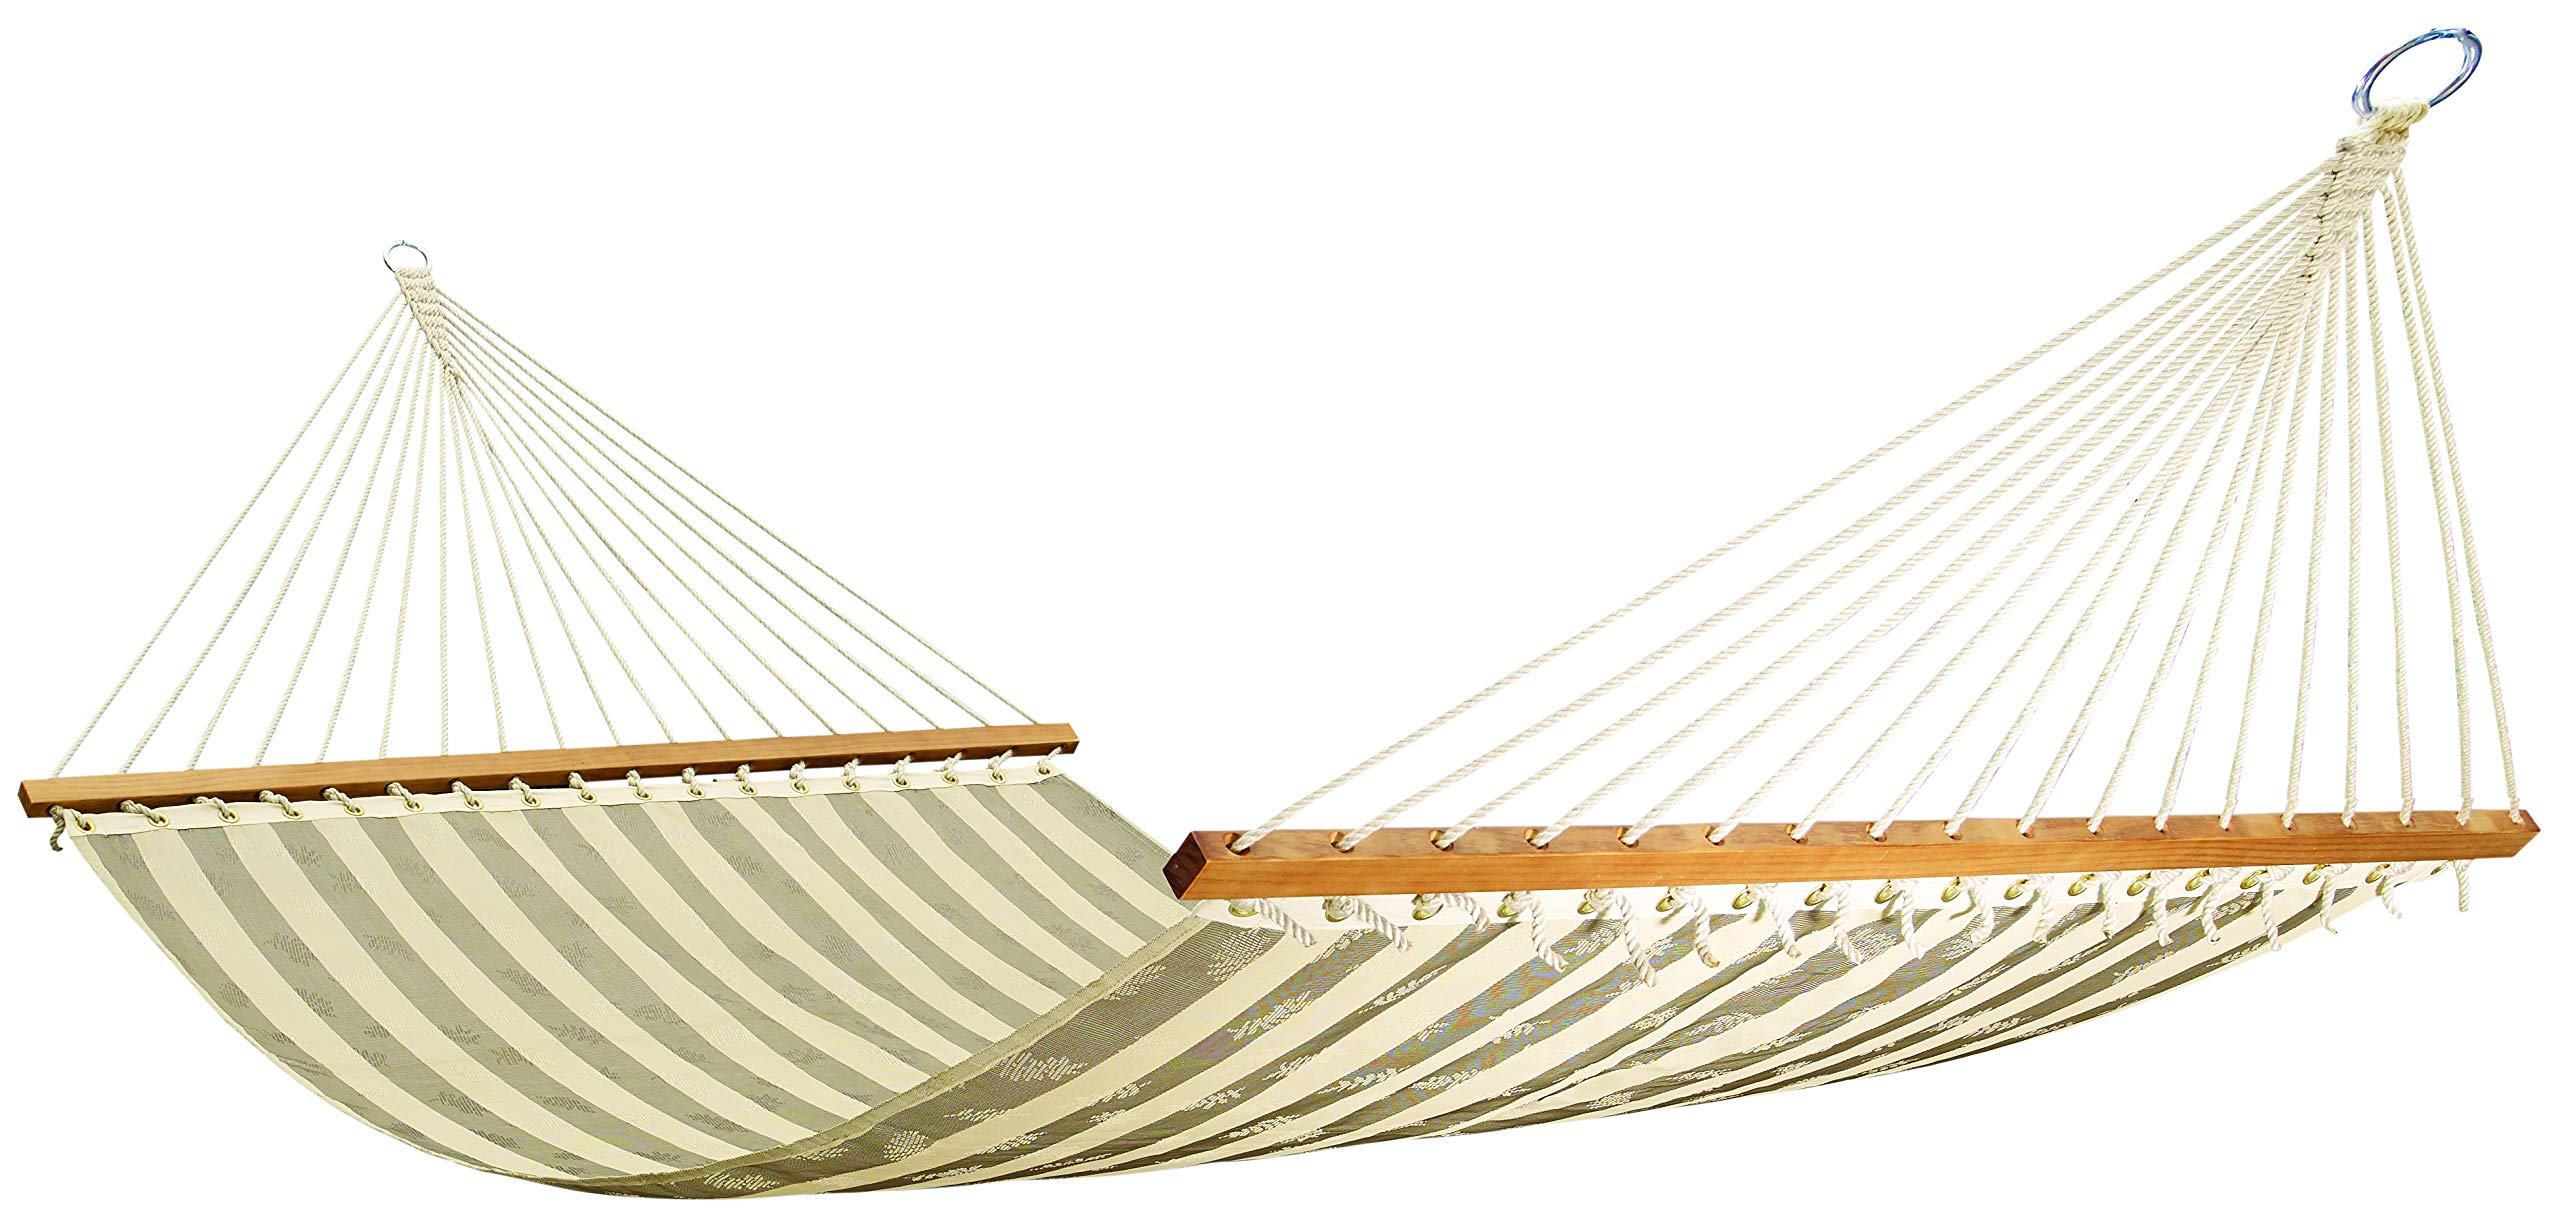 Hygge - Poolside Textilene Fabric Hammock Comes with Hardwood Spreader Bars. Quick-Dry and Suits a Two Adults. Perfect for Your Garden, Patio and Beach!